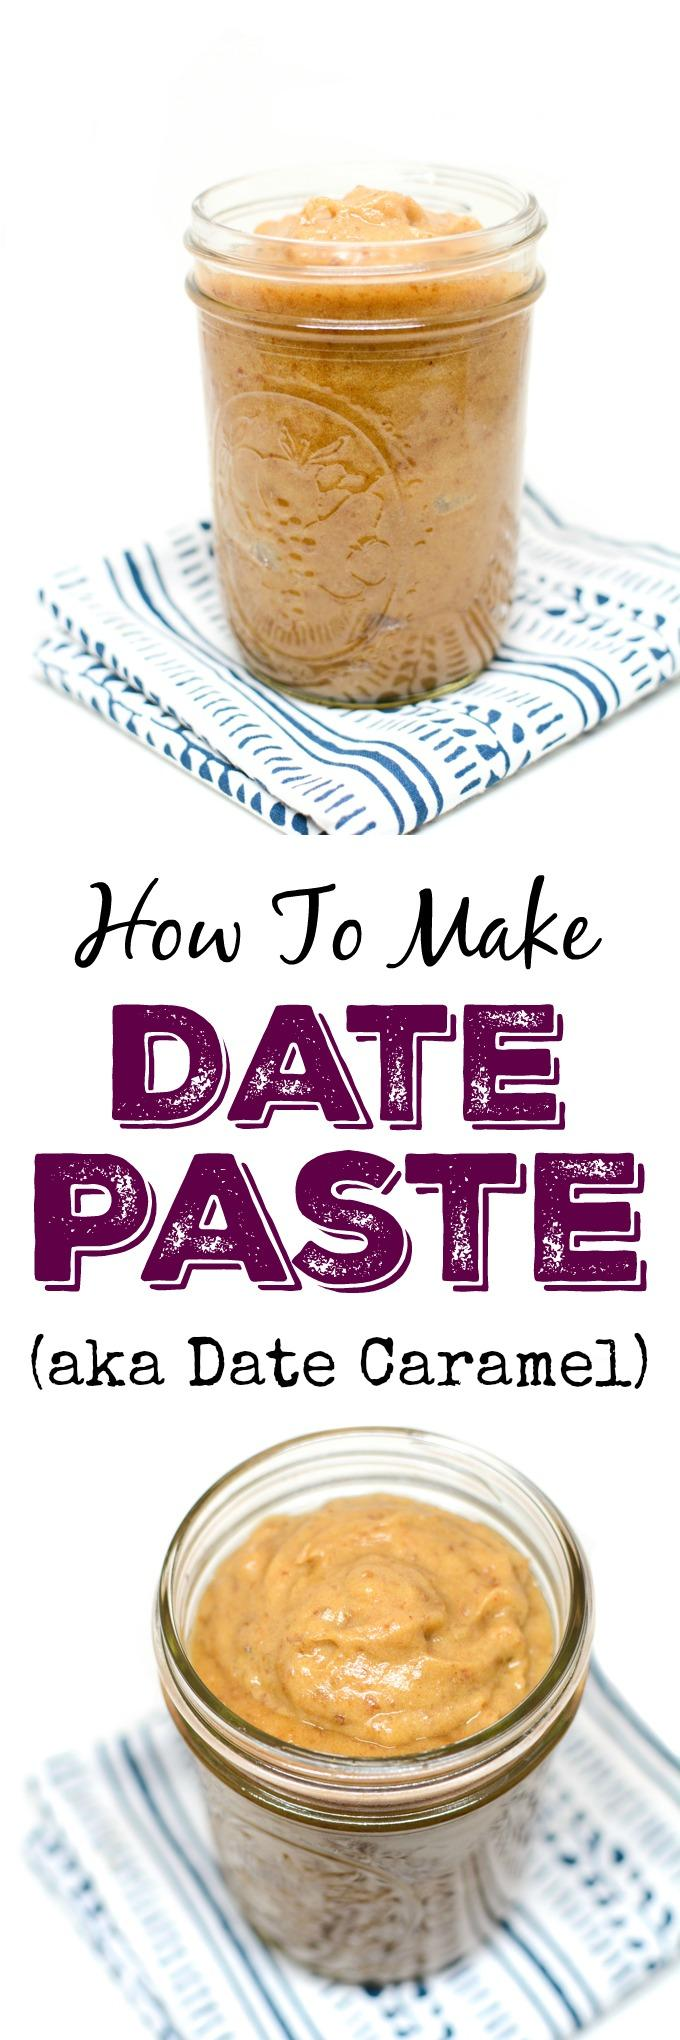 Learn how to make Date Paste (also known as date caramel) with just dates and water and use it to add natural sweetness and flavor to desserts and baked goods.